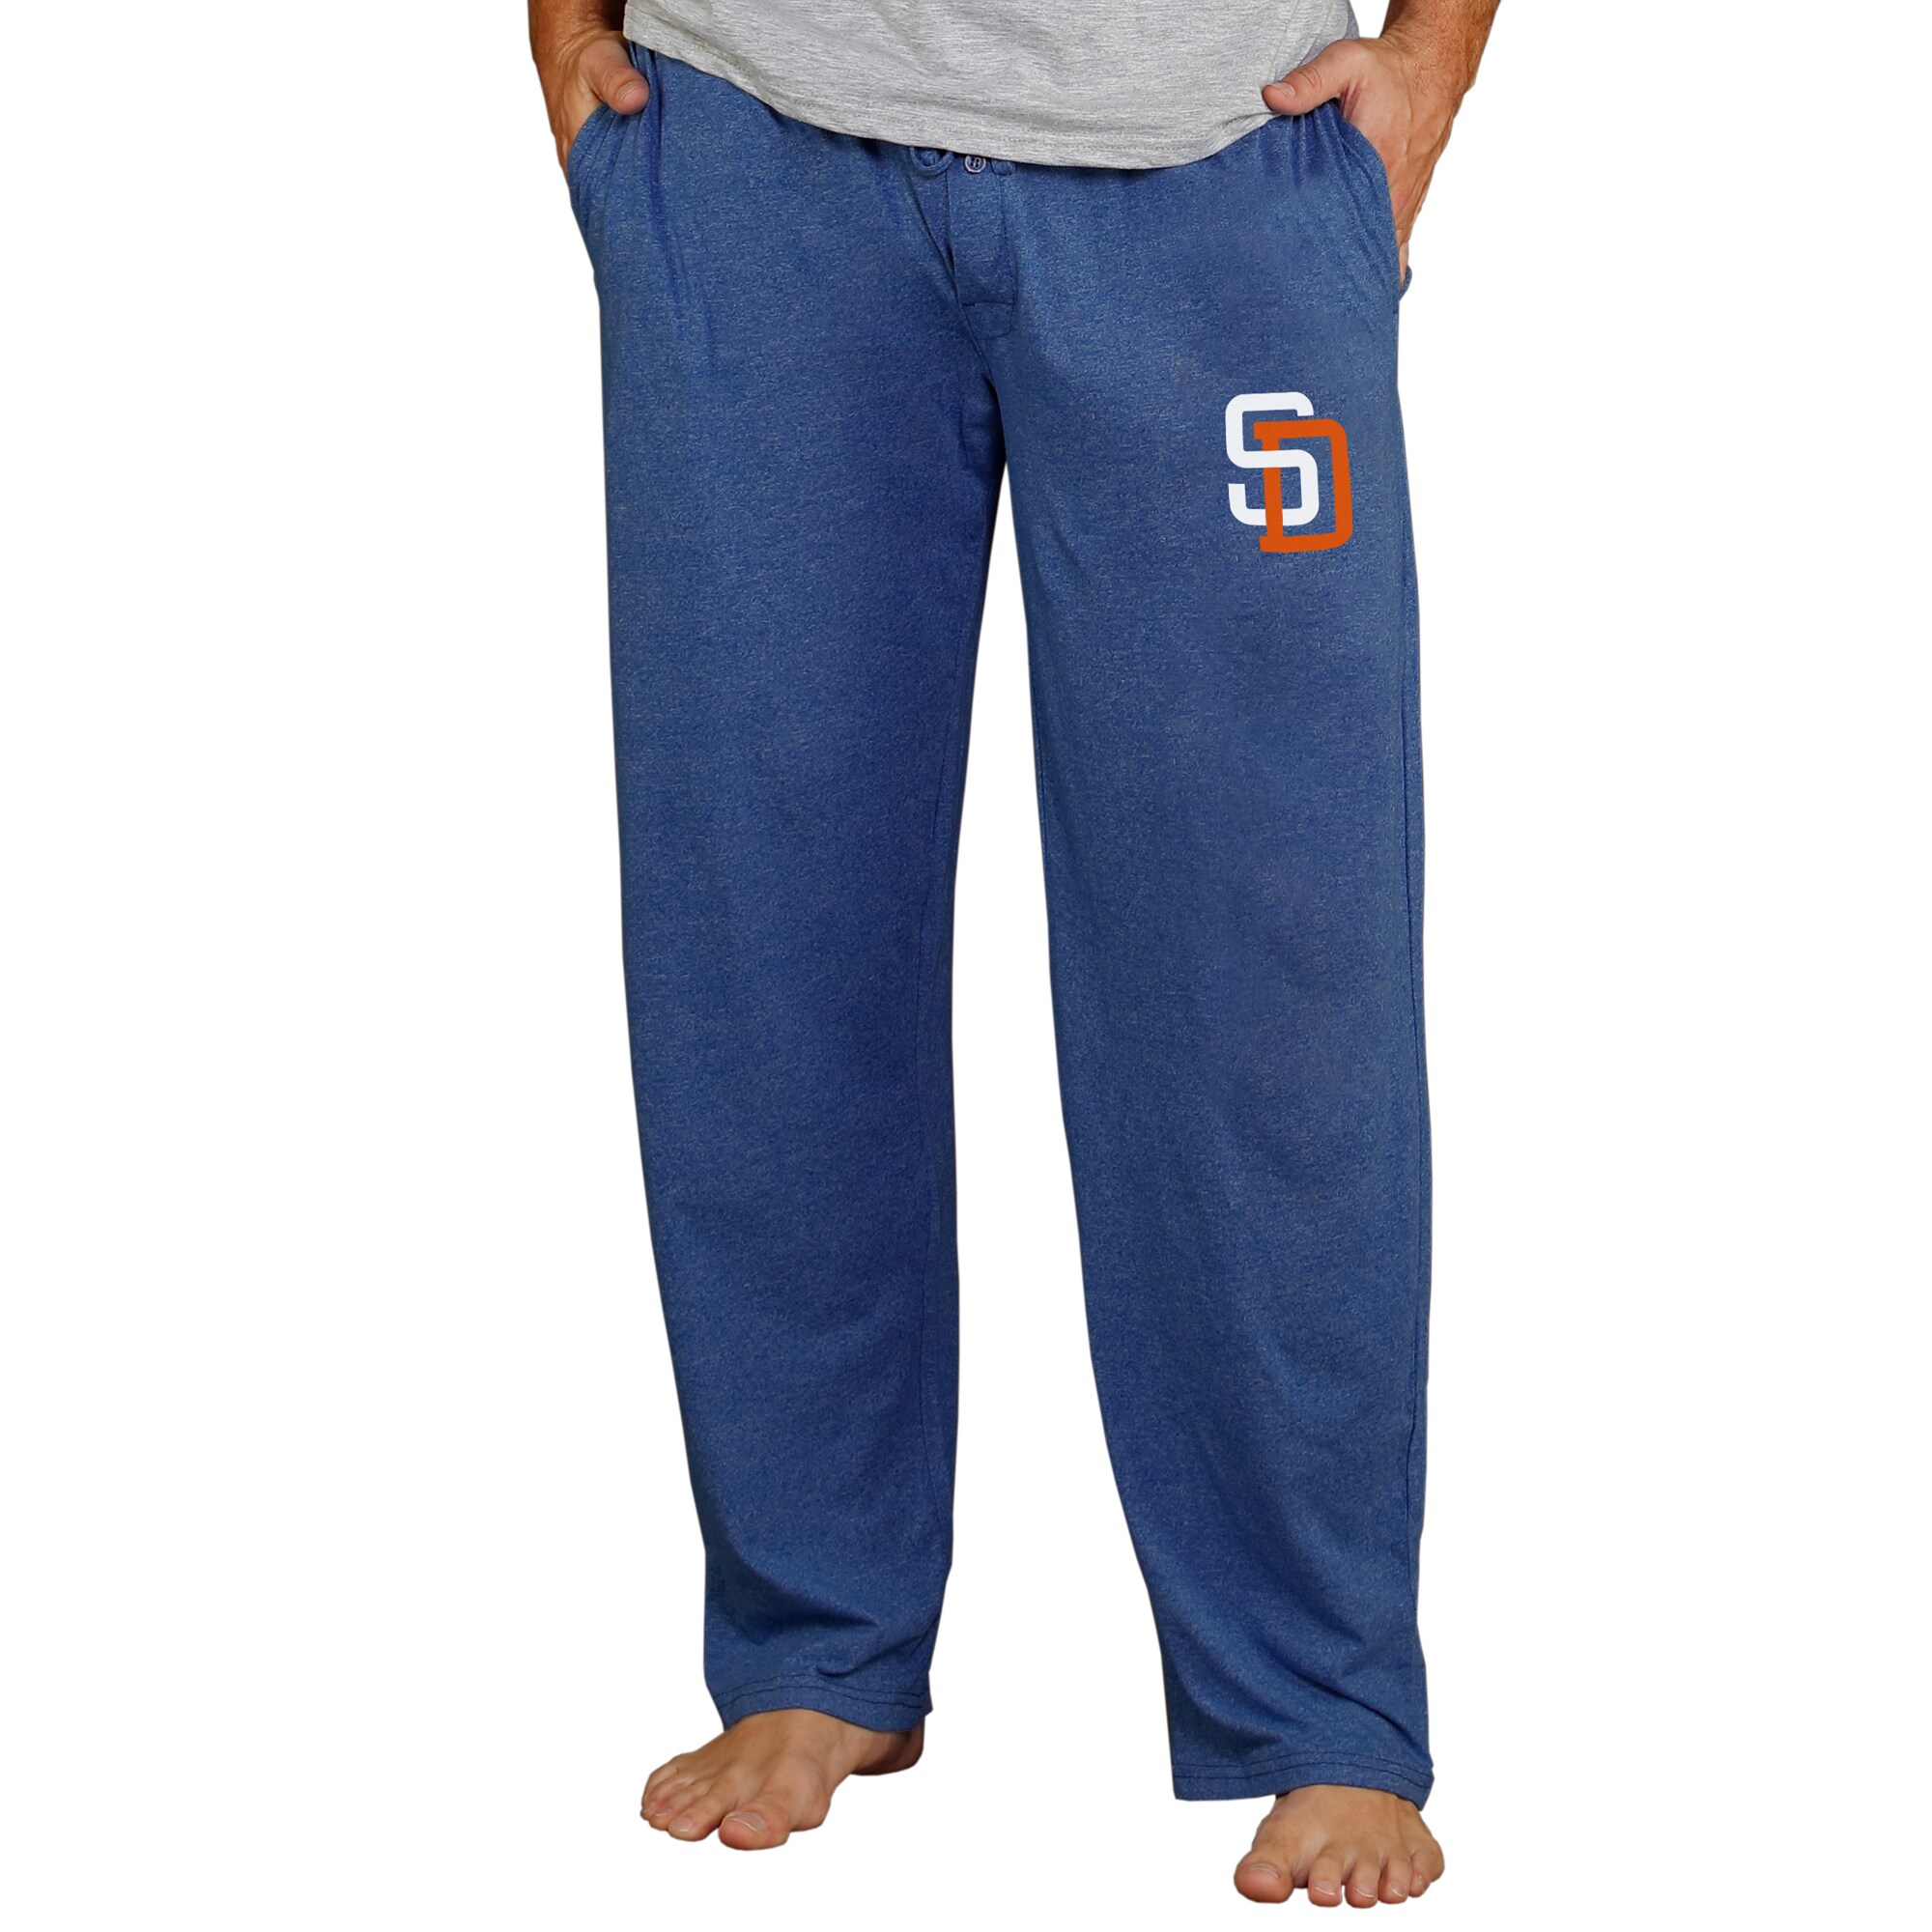 San Diego Padres Concepts Sport Cooperstown Quest Lounge Pants - Navy